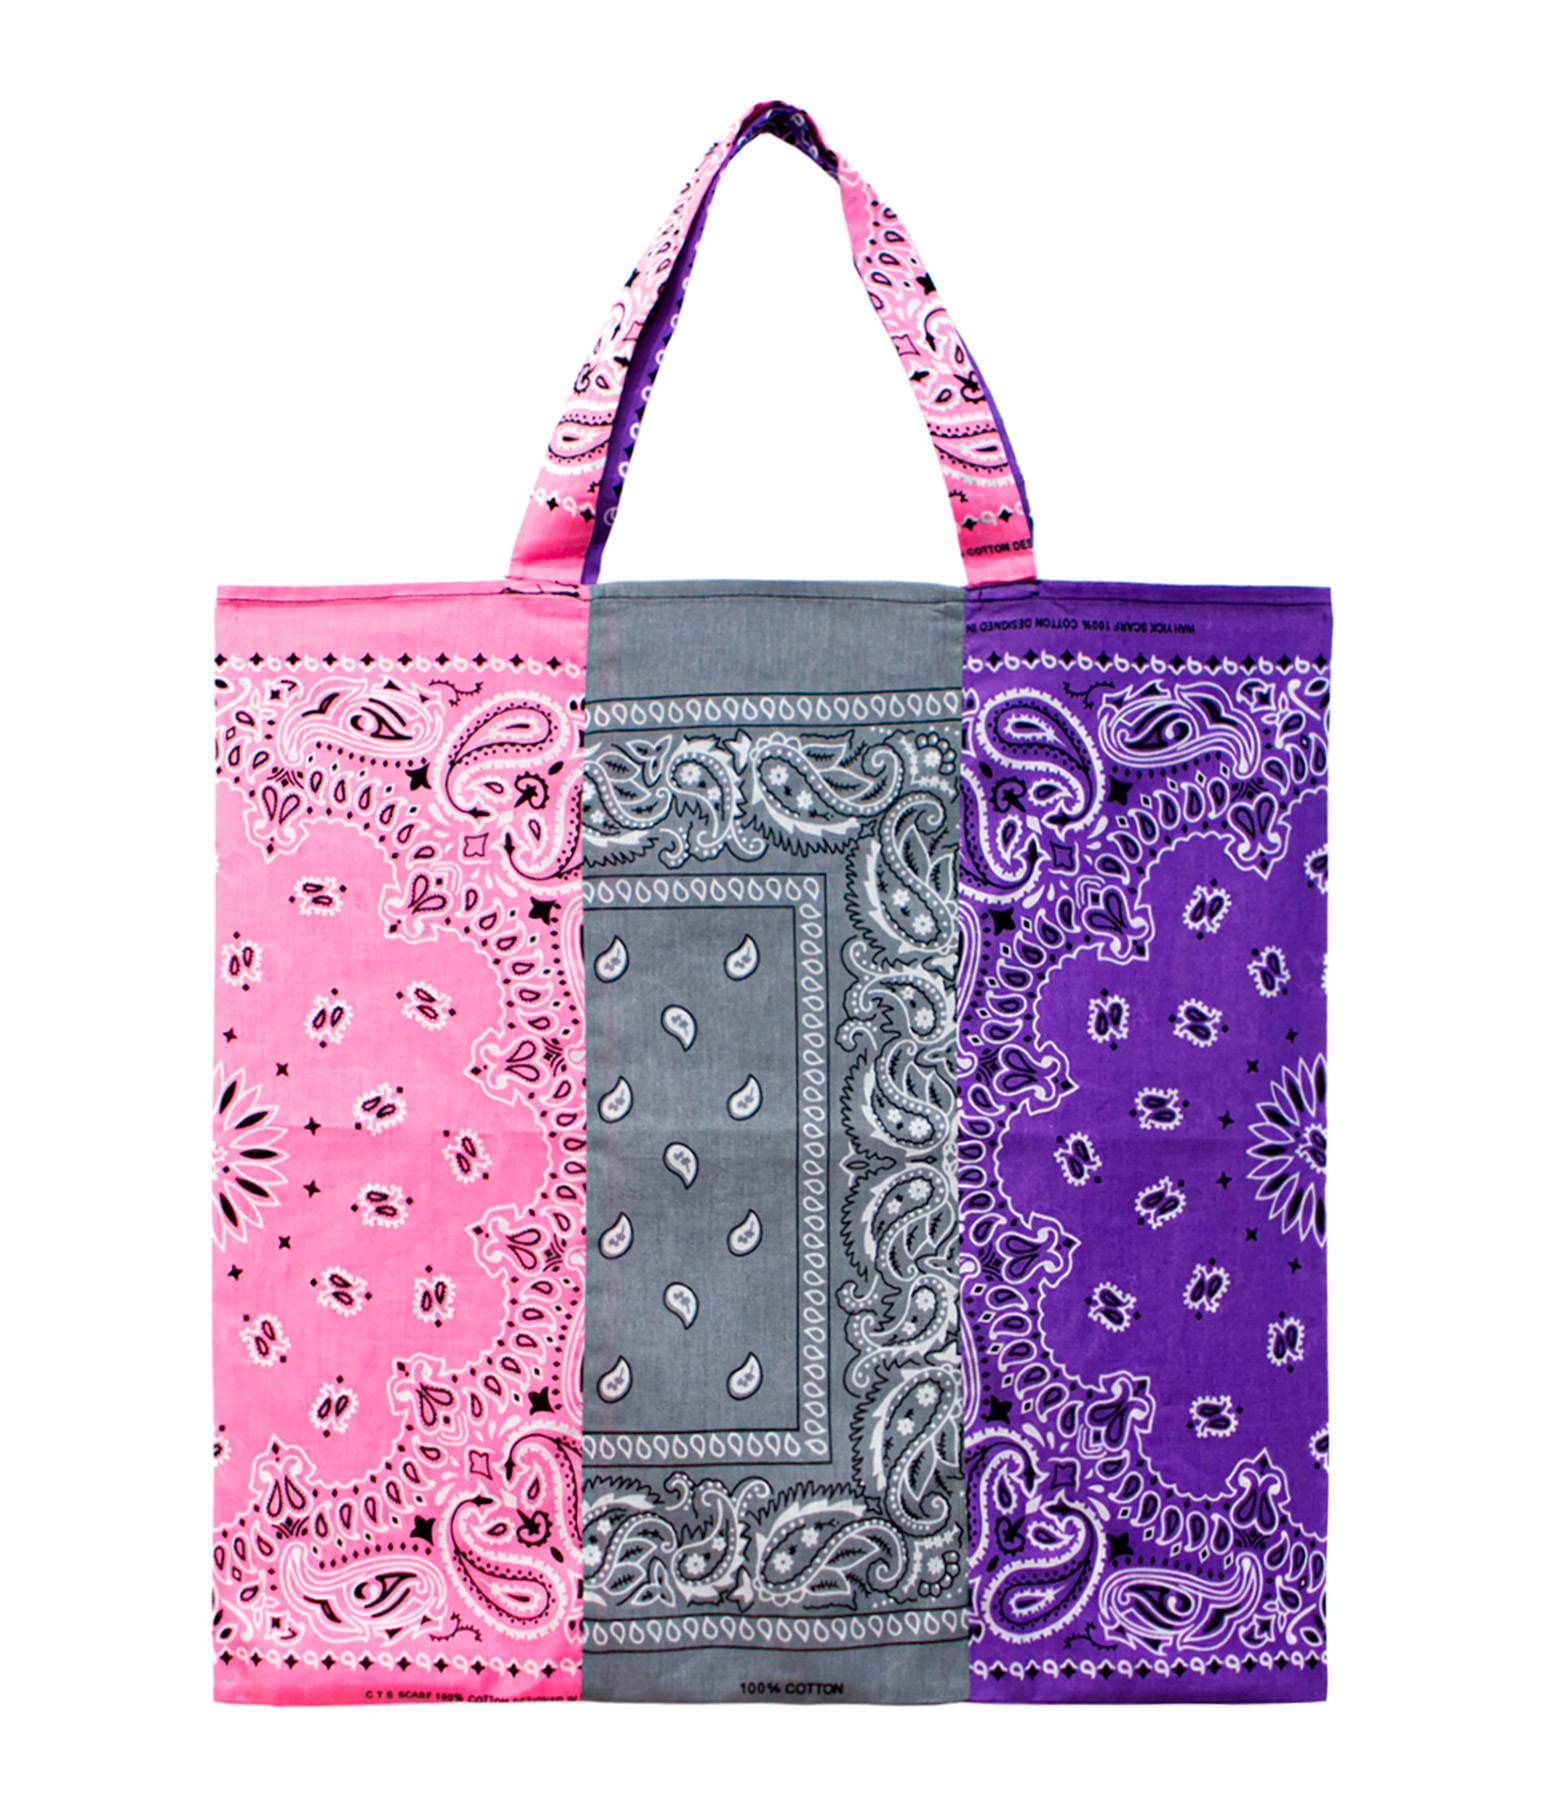 ARIZONA LOVE - Sac Tote Bag Bandana Tricolore Mix Rose